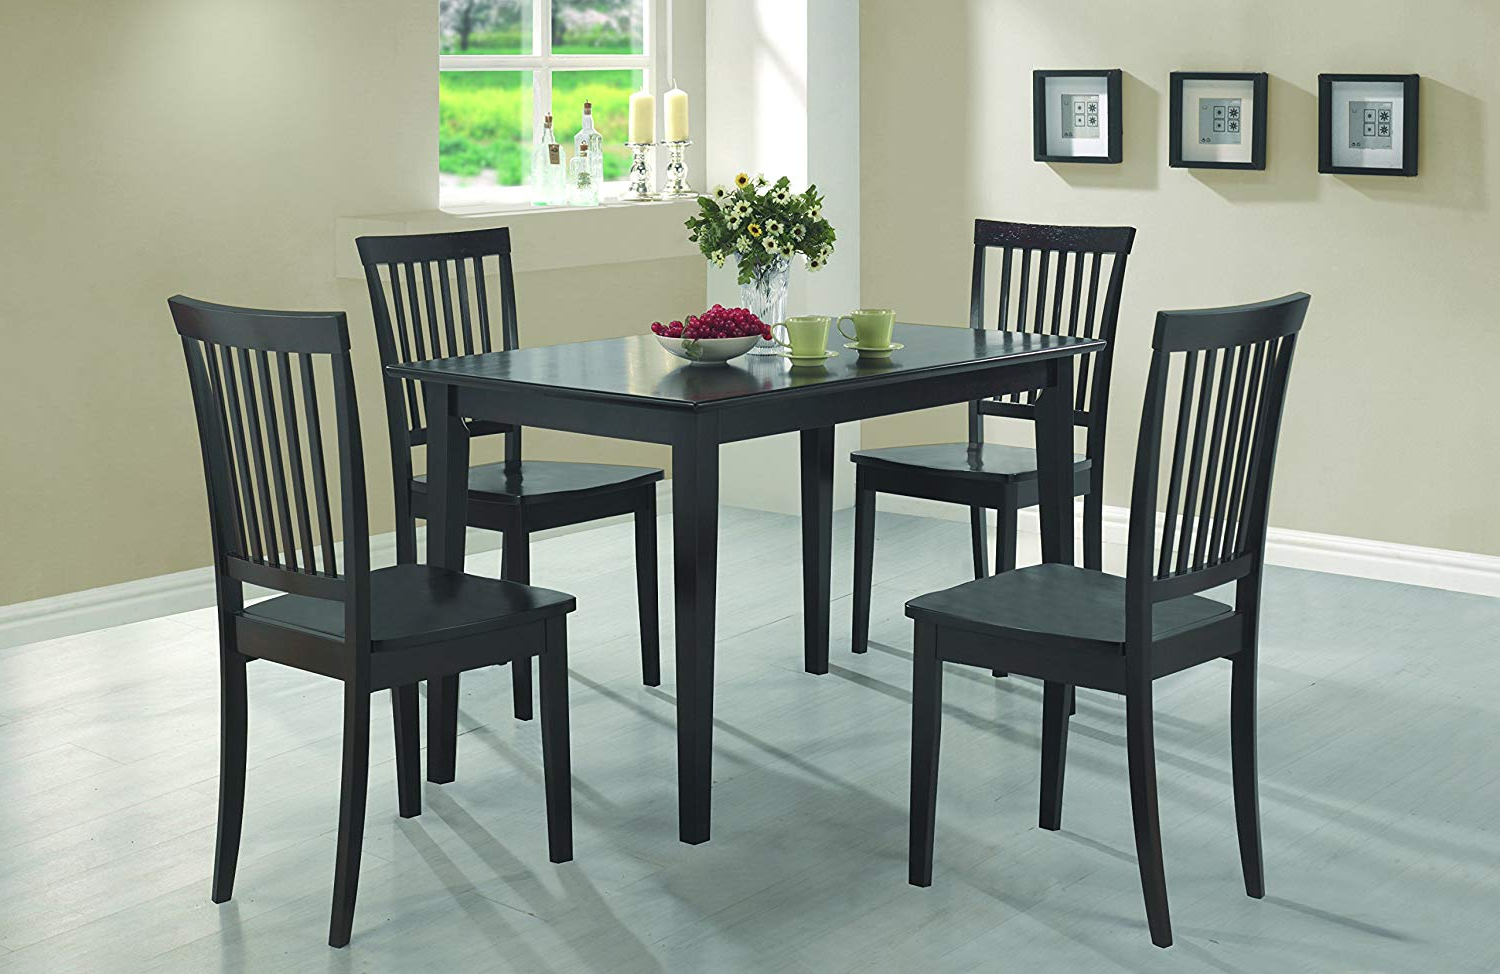 Amazon – Coaster 5 Piece Dining Set, Table Top With 4 Chairs Throughout Most Up To Date Kieffer 5 Piece Dining Sets (View 4 of 25)